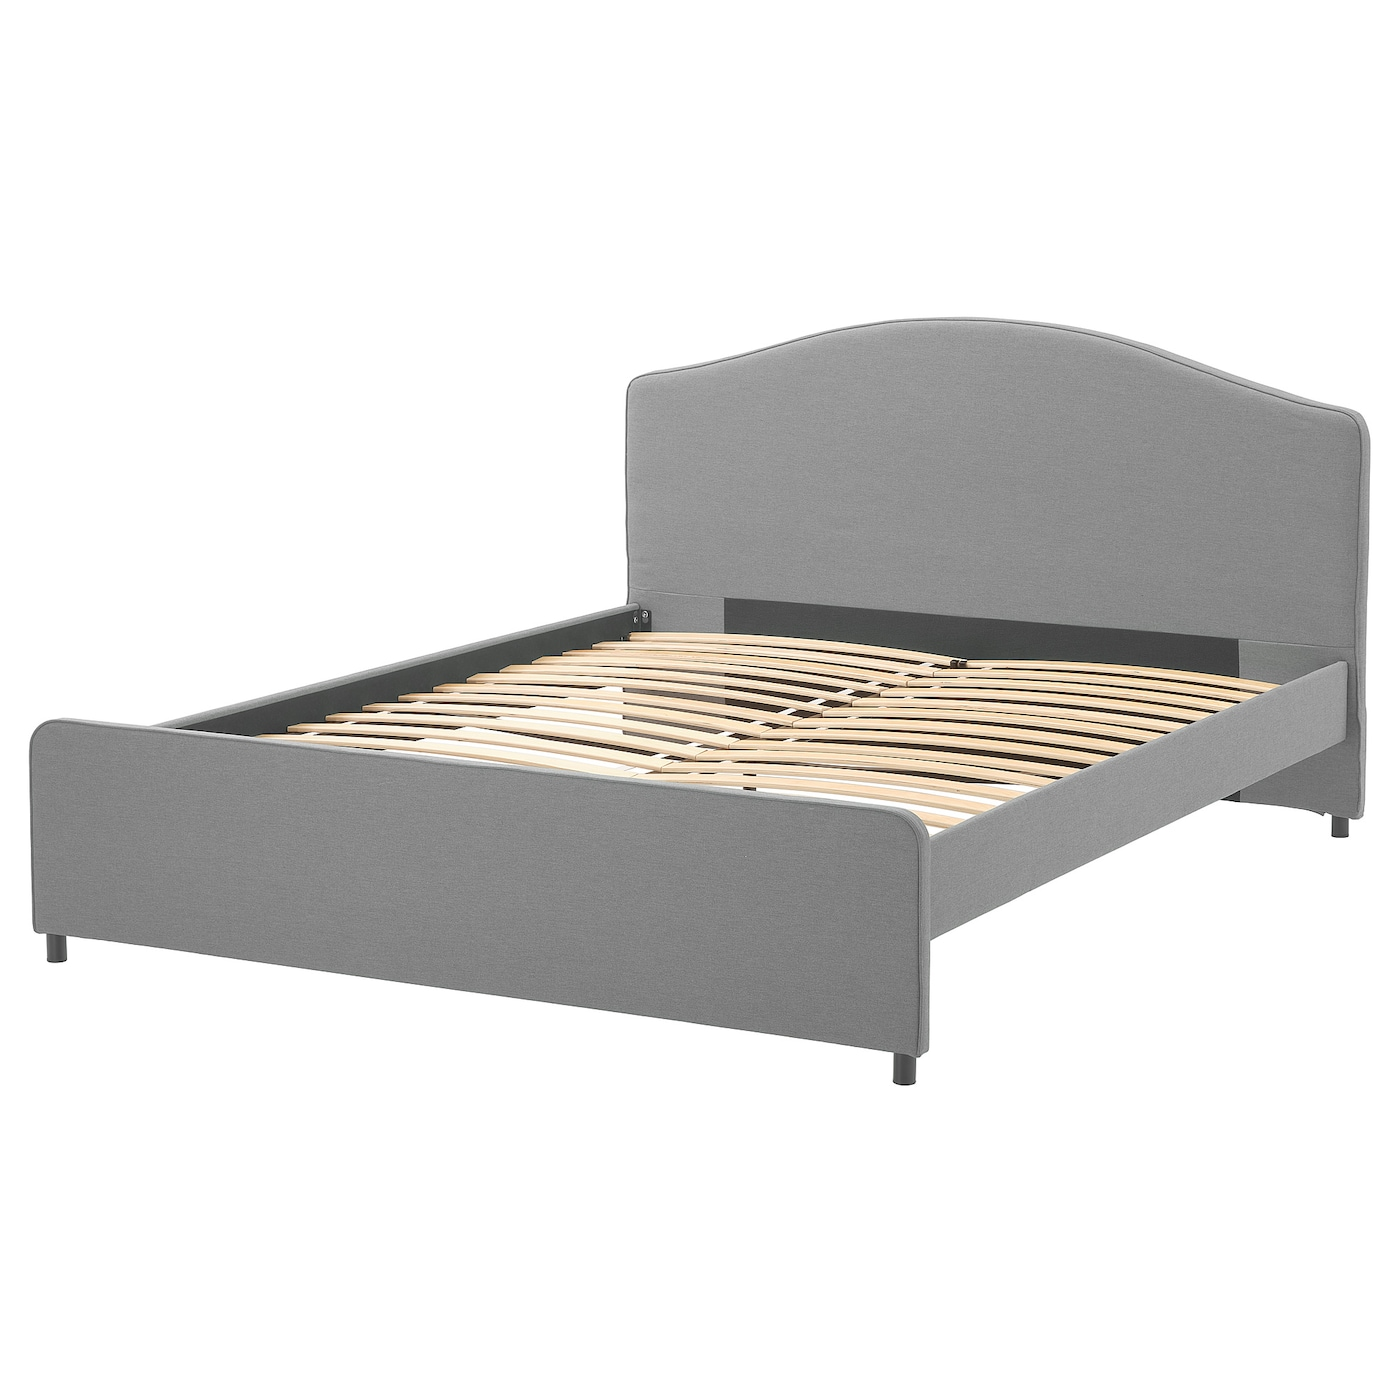 Hauga Upholstered Bed Frame Vissle Gray Full Ikea